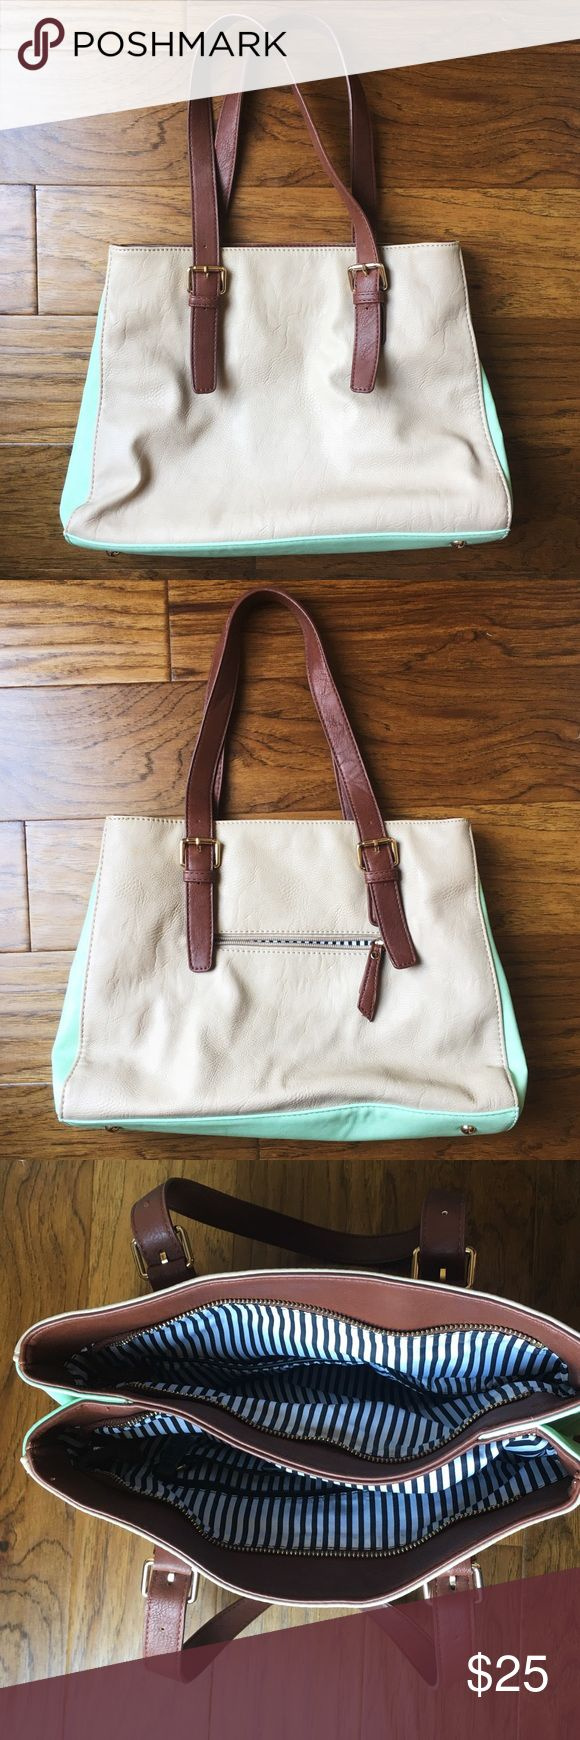 Cute beige and mint purse Fun spring and summer beige and mint purse! Rarely used and in excellent condition. Two different compartments for extra storage. Happy shopping 😊 Charming Charlie Bags Shoulder Bags